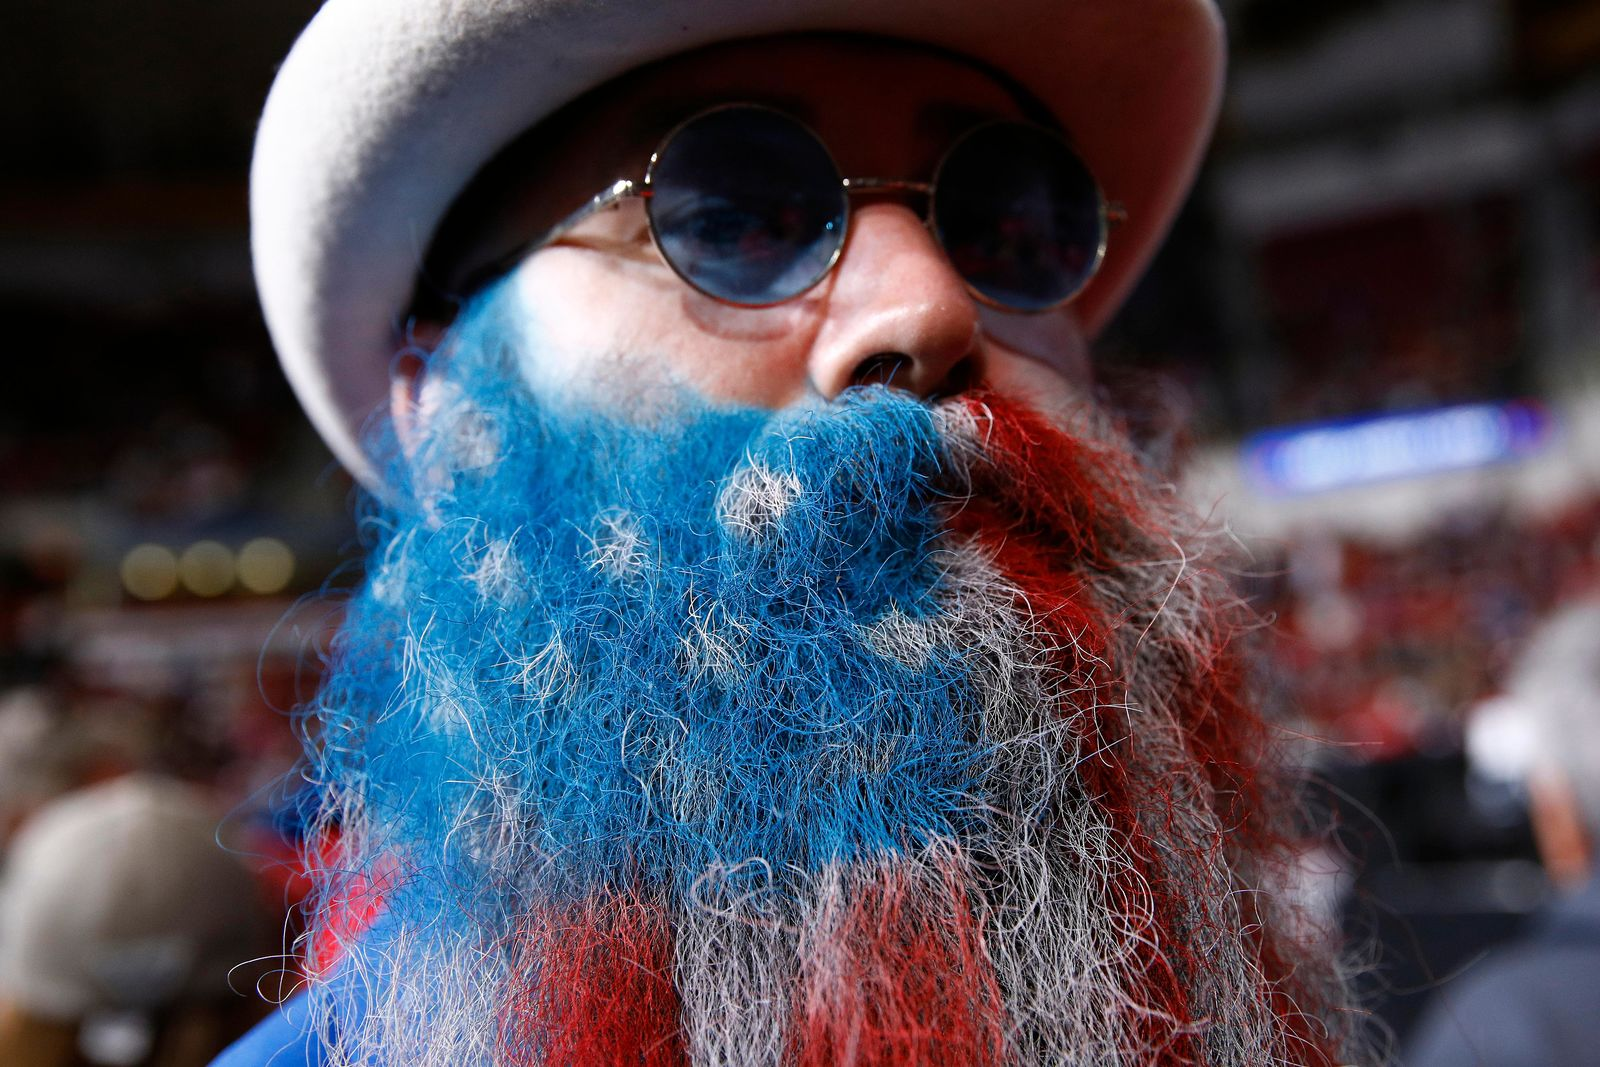 Adam Gazda of Savannah, Ga., shows off his beard painted in the colors of the American flag before a campaign rally for President Donald Trump, Friday, Feb. 28, 2020, in North Charleston, S.C. (AP Photo/Patrick Semansky)